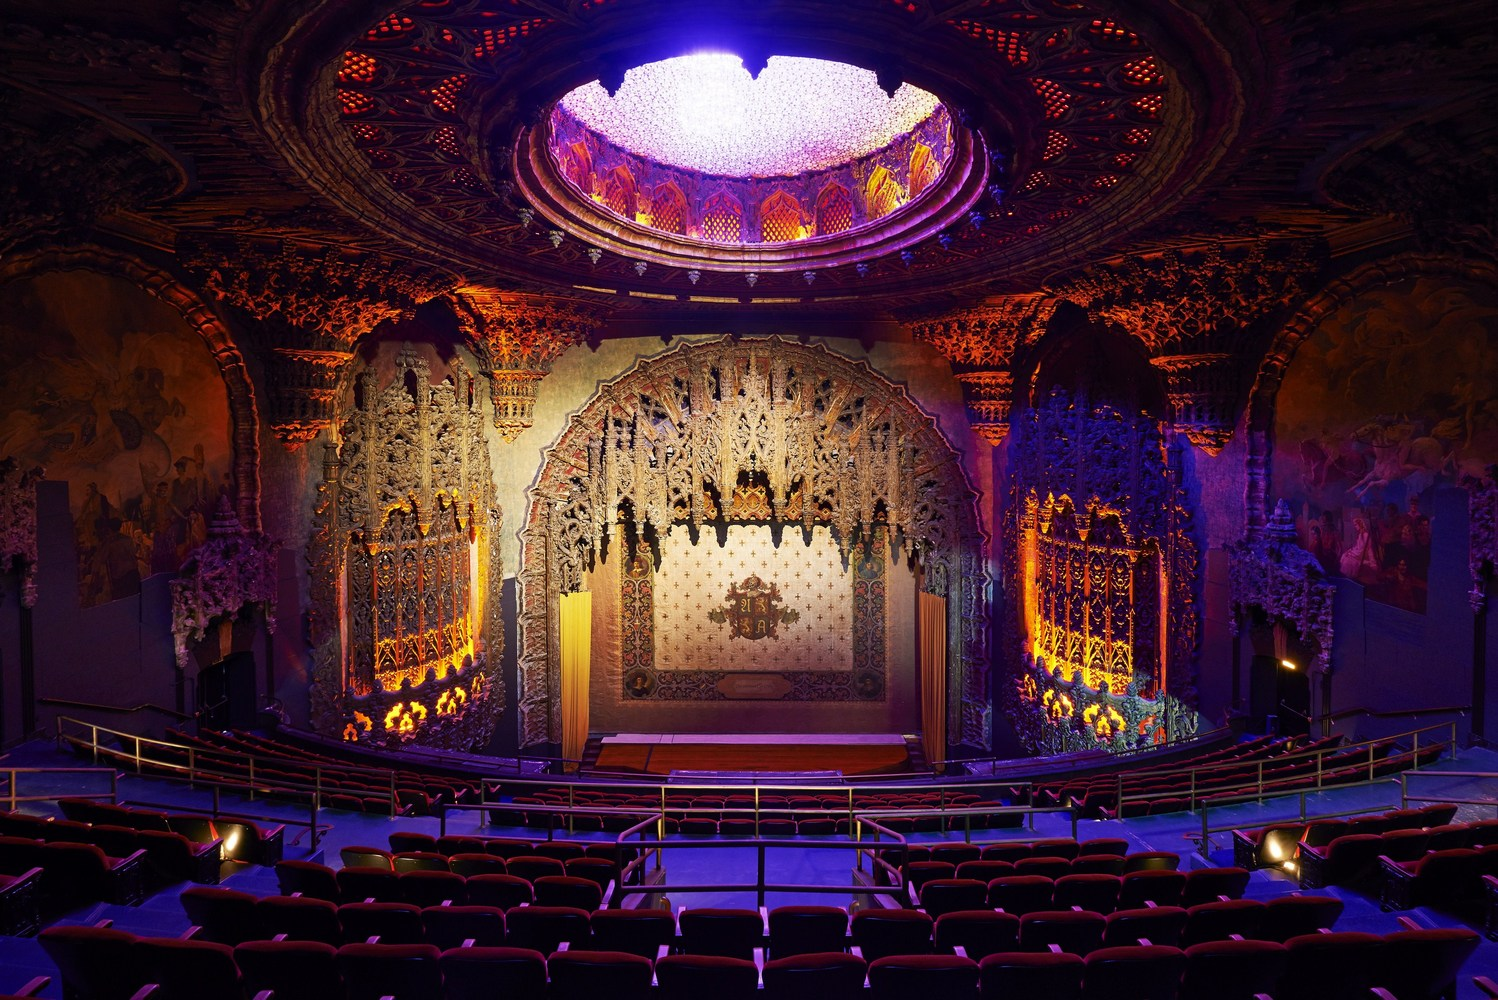 Ace_-_DTLA_-_Theater_-_Spencer_Lowell_(Resized)